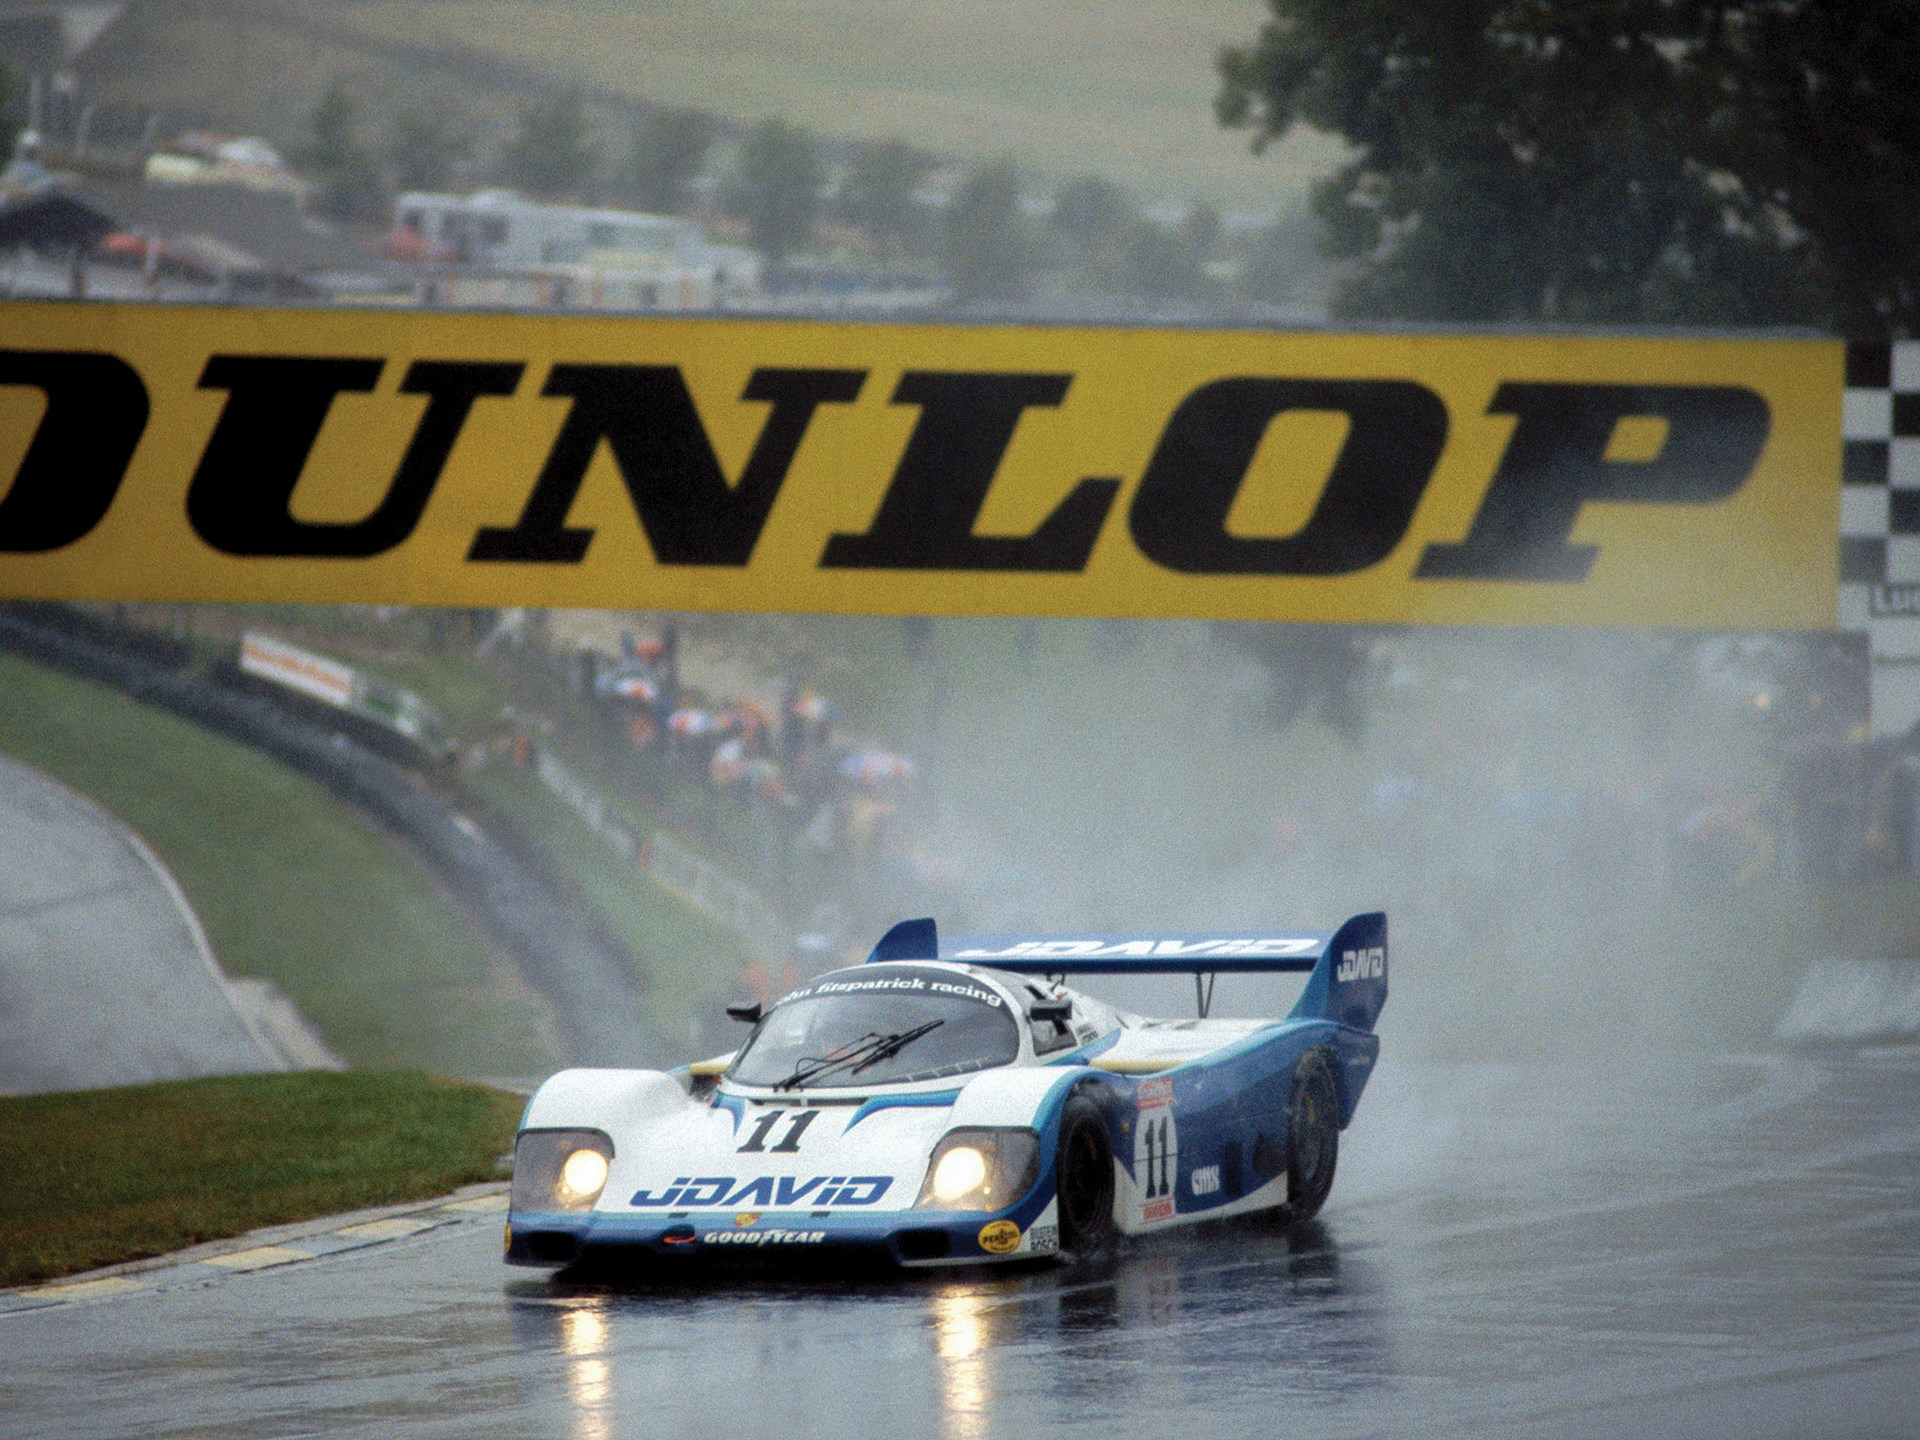 Chassis no. 956-110 races to a first place finish at Brands Hatch in 1983.